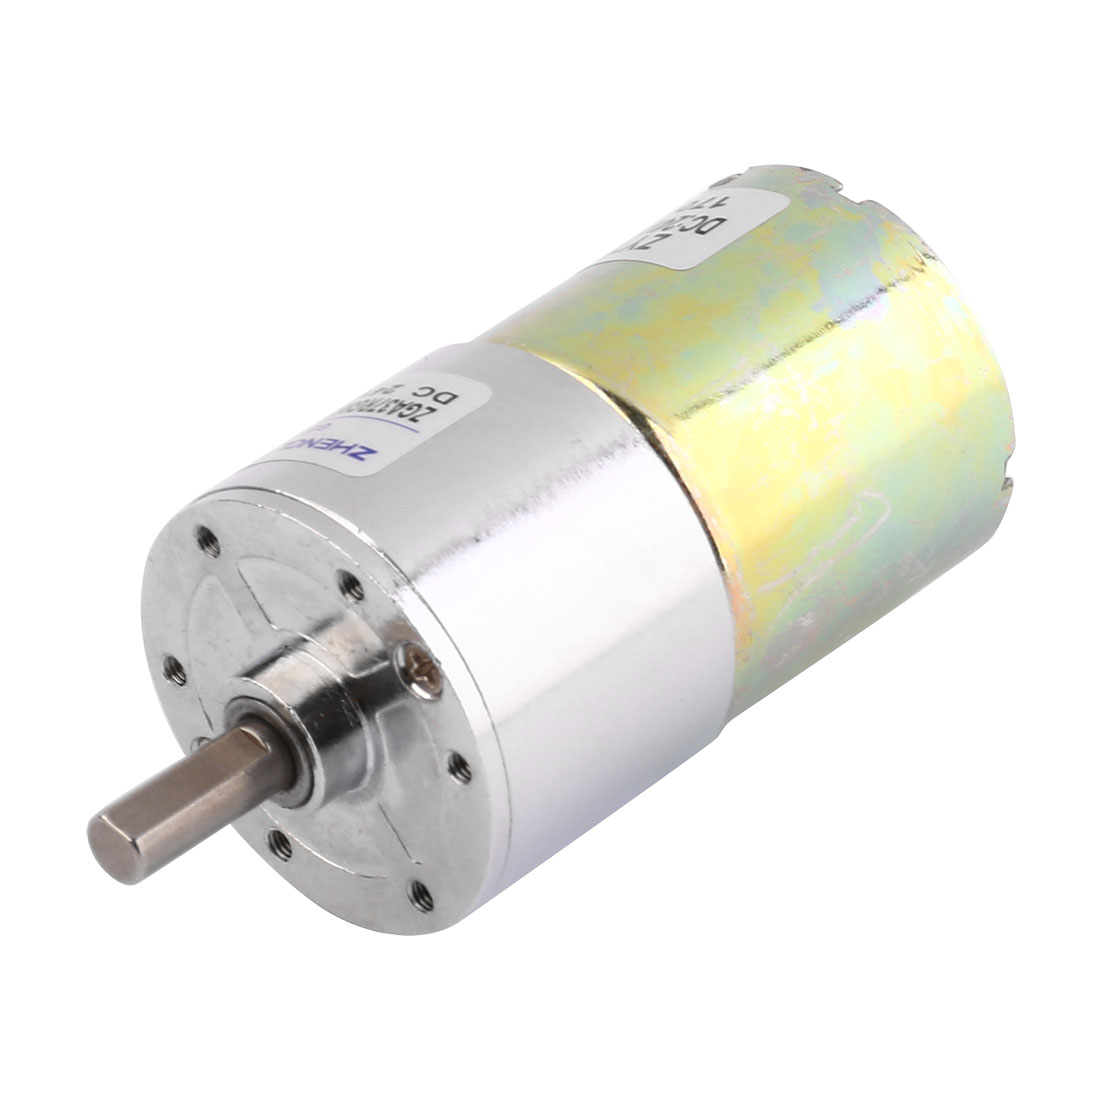 DC 24V 50RPM Micro Gear Box Motor Speed Reduction Electric Gearbox Centric Output Shaft